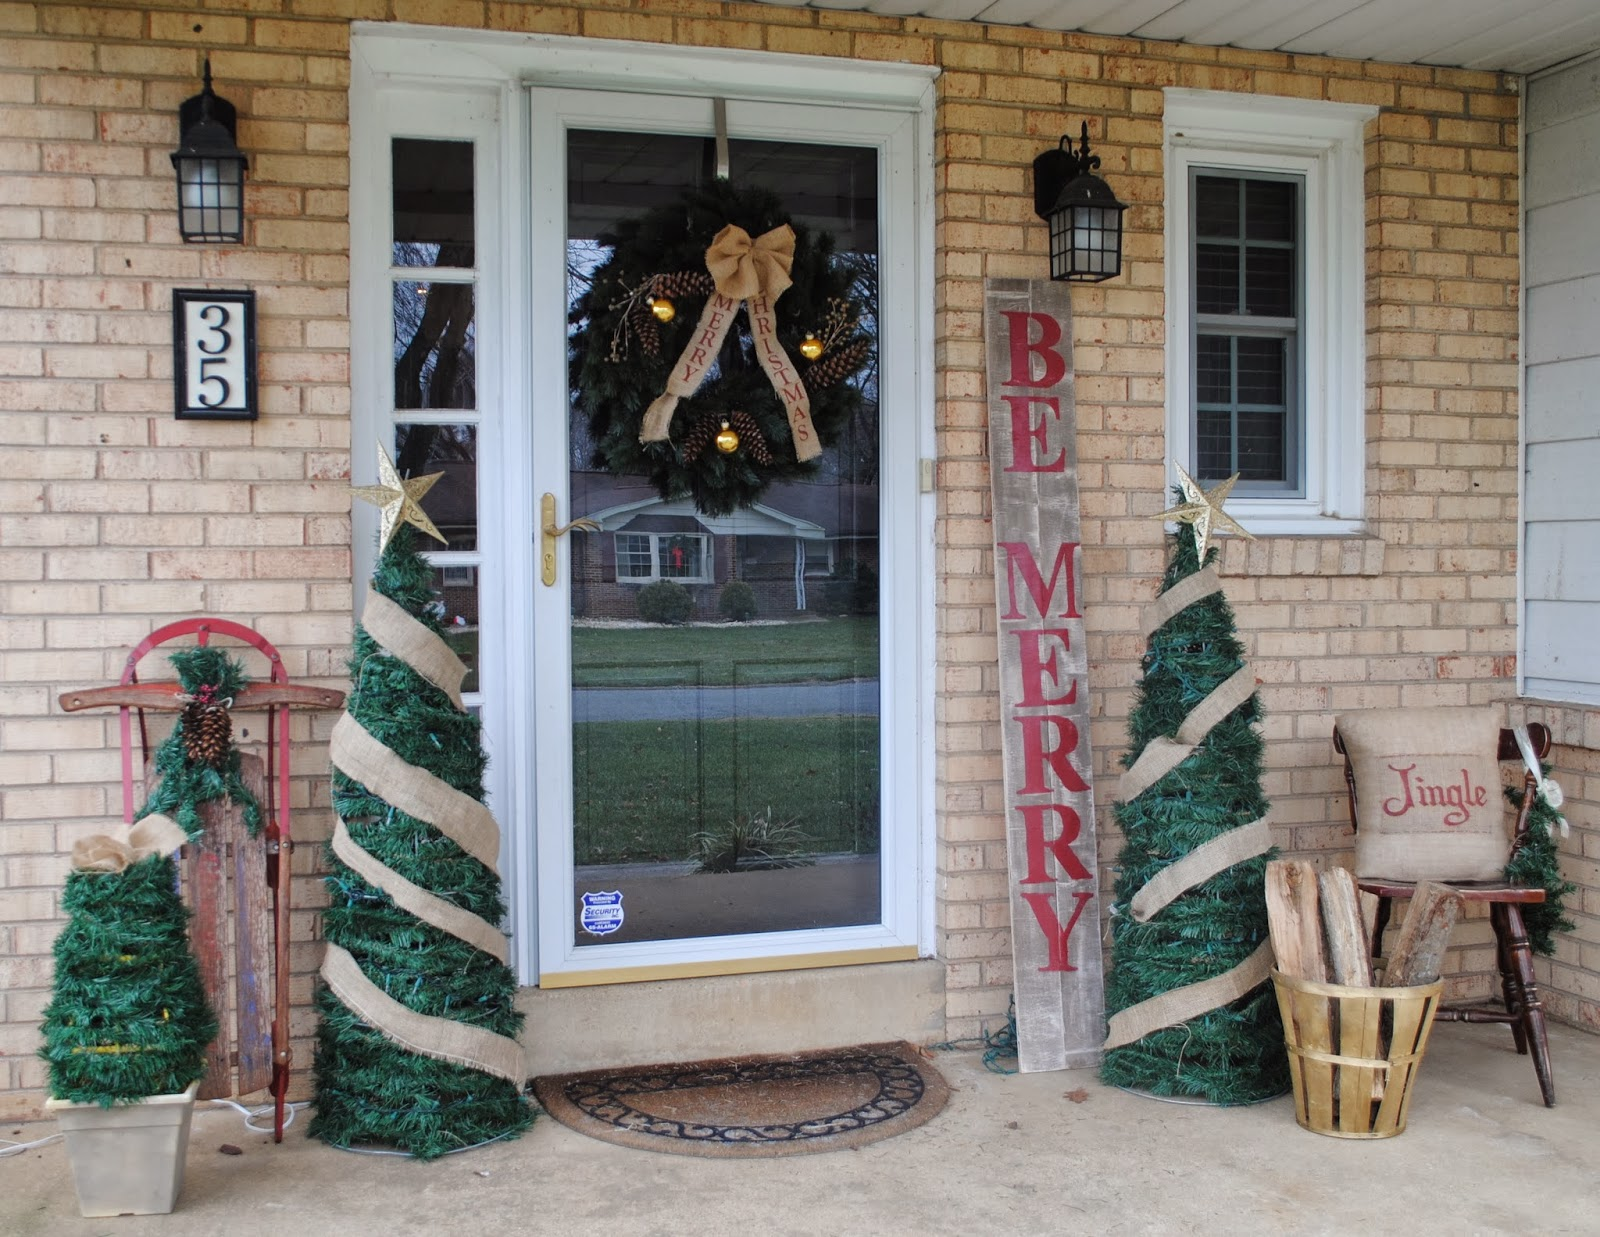 and that is how i decorated my christmas front porch for 5875 - Pottery Barn Outdoor Christmas Decorations